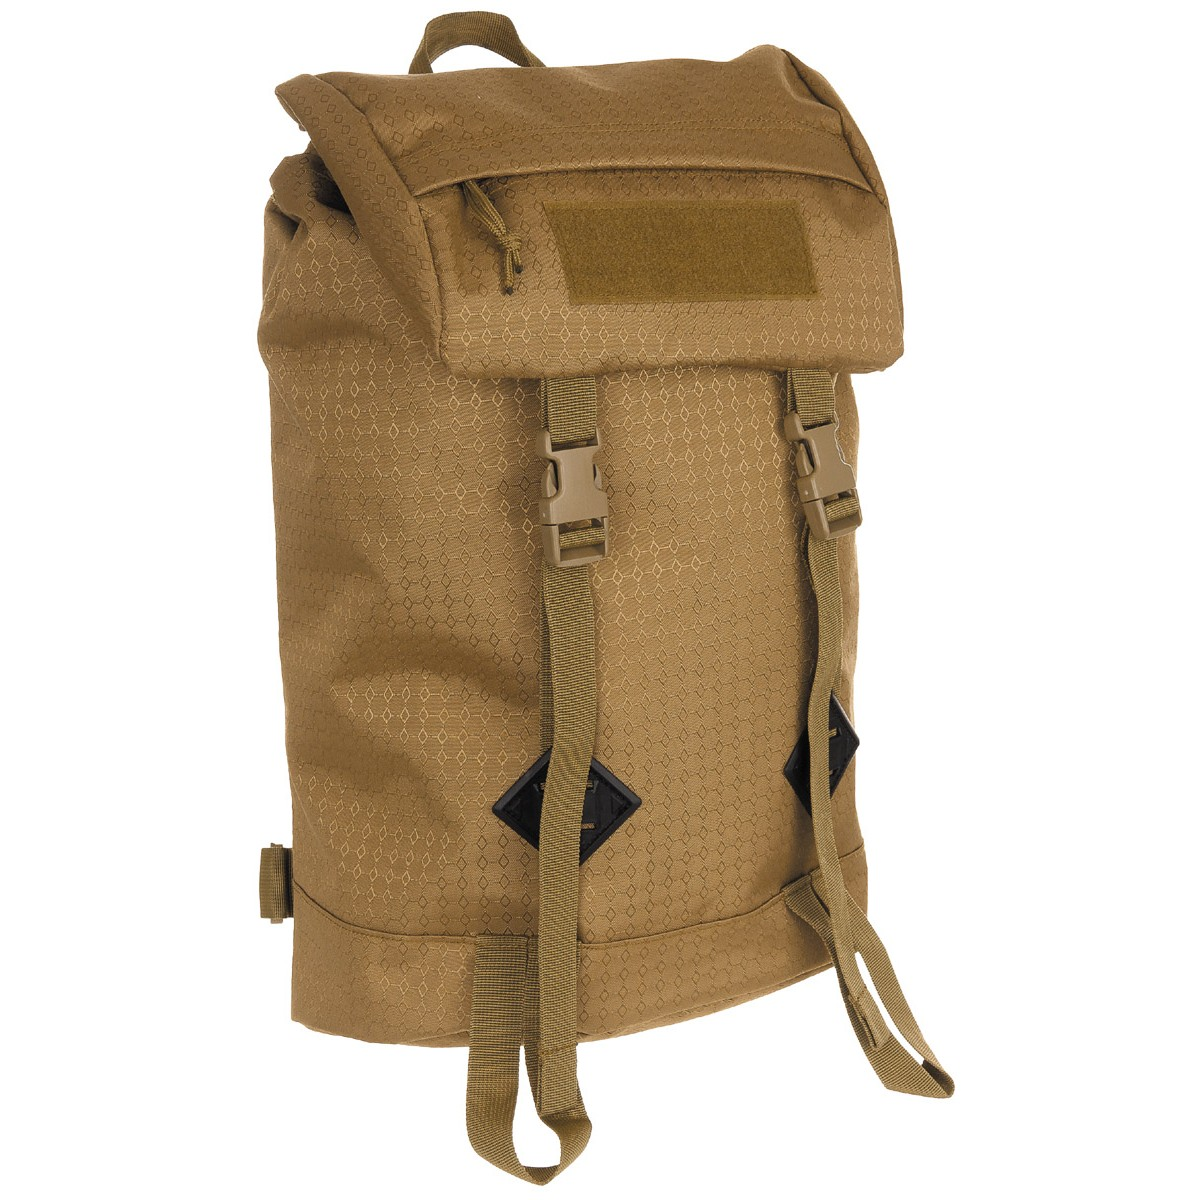 "Stylish Outdoor City Backpack Bag ""Bote"" OctaTac 25L - Coyote"